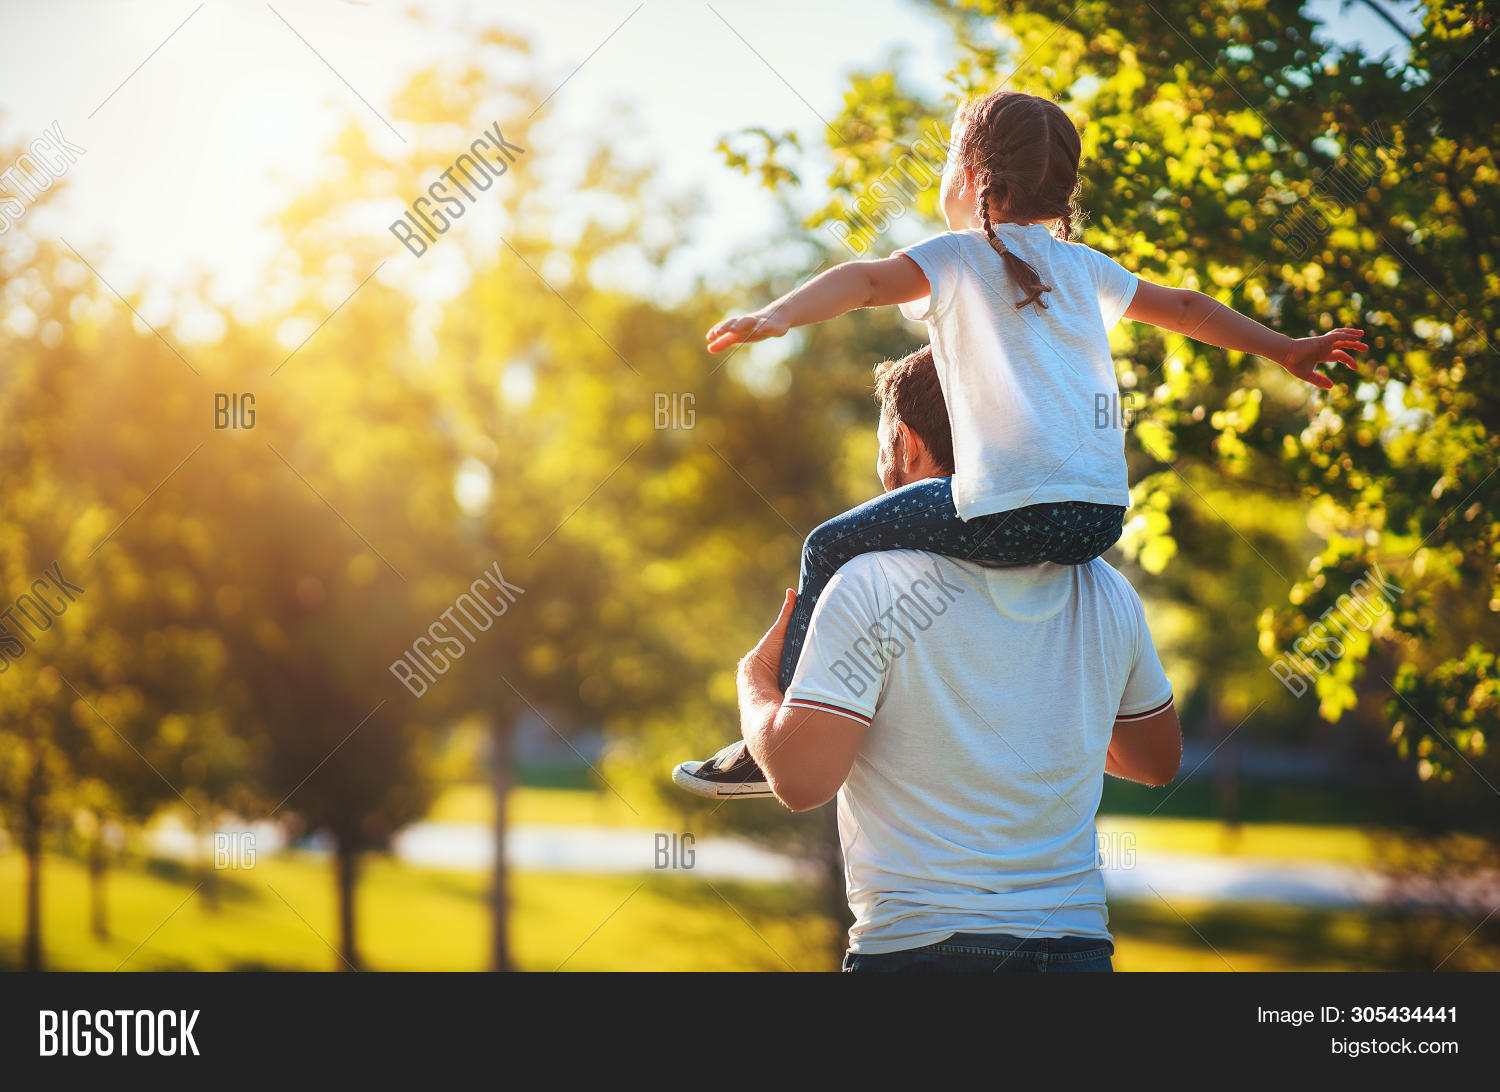 adult,back,beautiful,care,caucasian,cheerful,child,childhood,cute,dad,daughter,day,family,father,freedom,friendship,fun,girl,happiness,happy,healthy,holiday,joy,kid,laughing,leisure,life,lifestyle,little,love,male,man,nature,outdoor,outside,parent,park,people,playing,season,shoulders,summer,sun,sunset,together,togetherness,travel,two,vacation,young